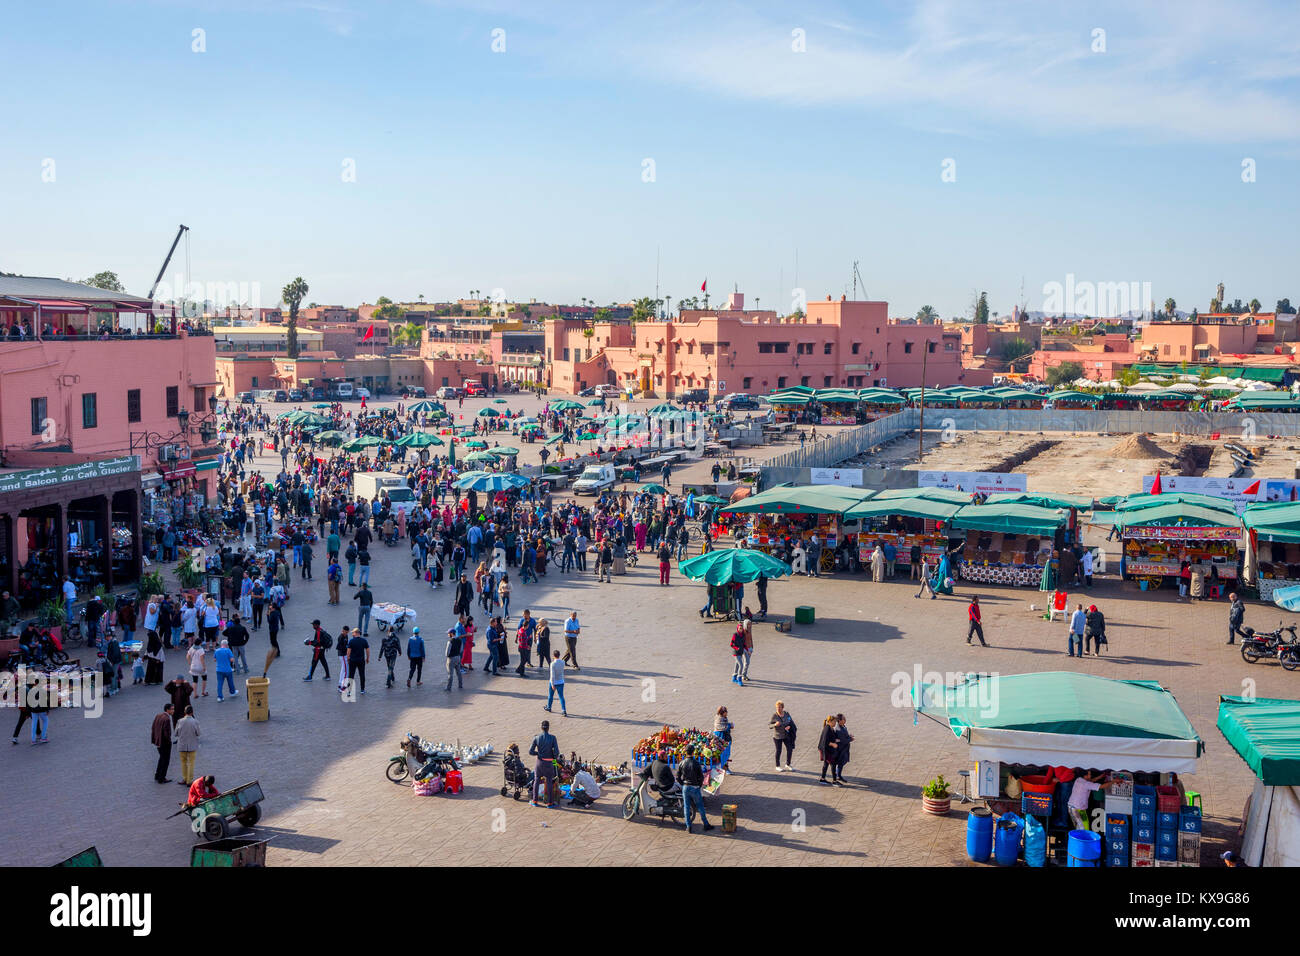 MARRAKECH, MOROCCO - DECEMBER 11: Crowded Jemaa el-Fnaa square from above, Marrakech. December 2016 Stock Photo